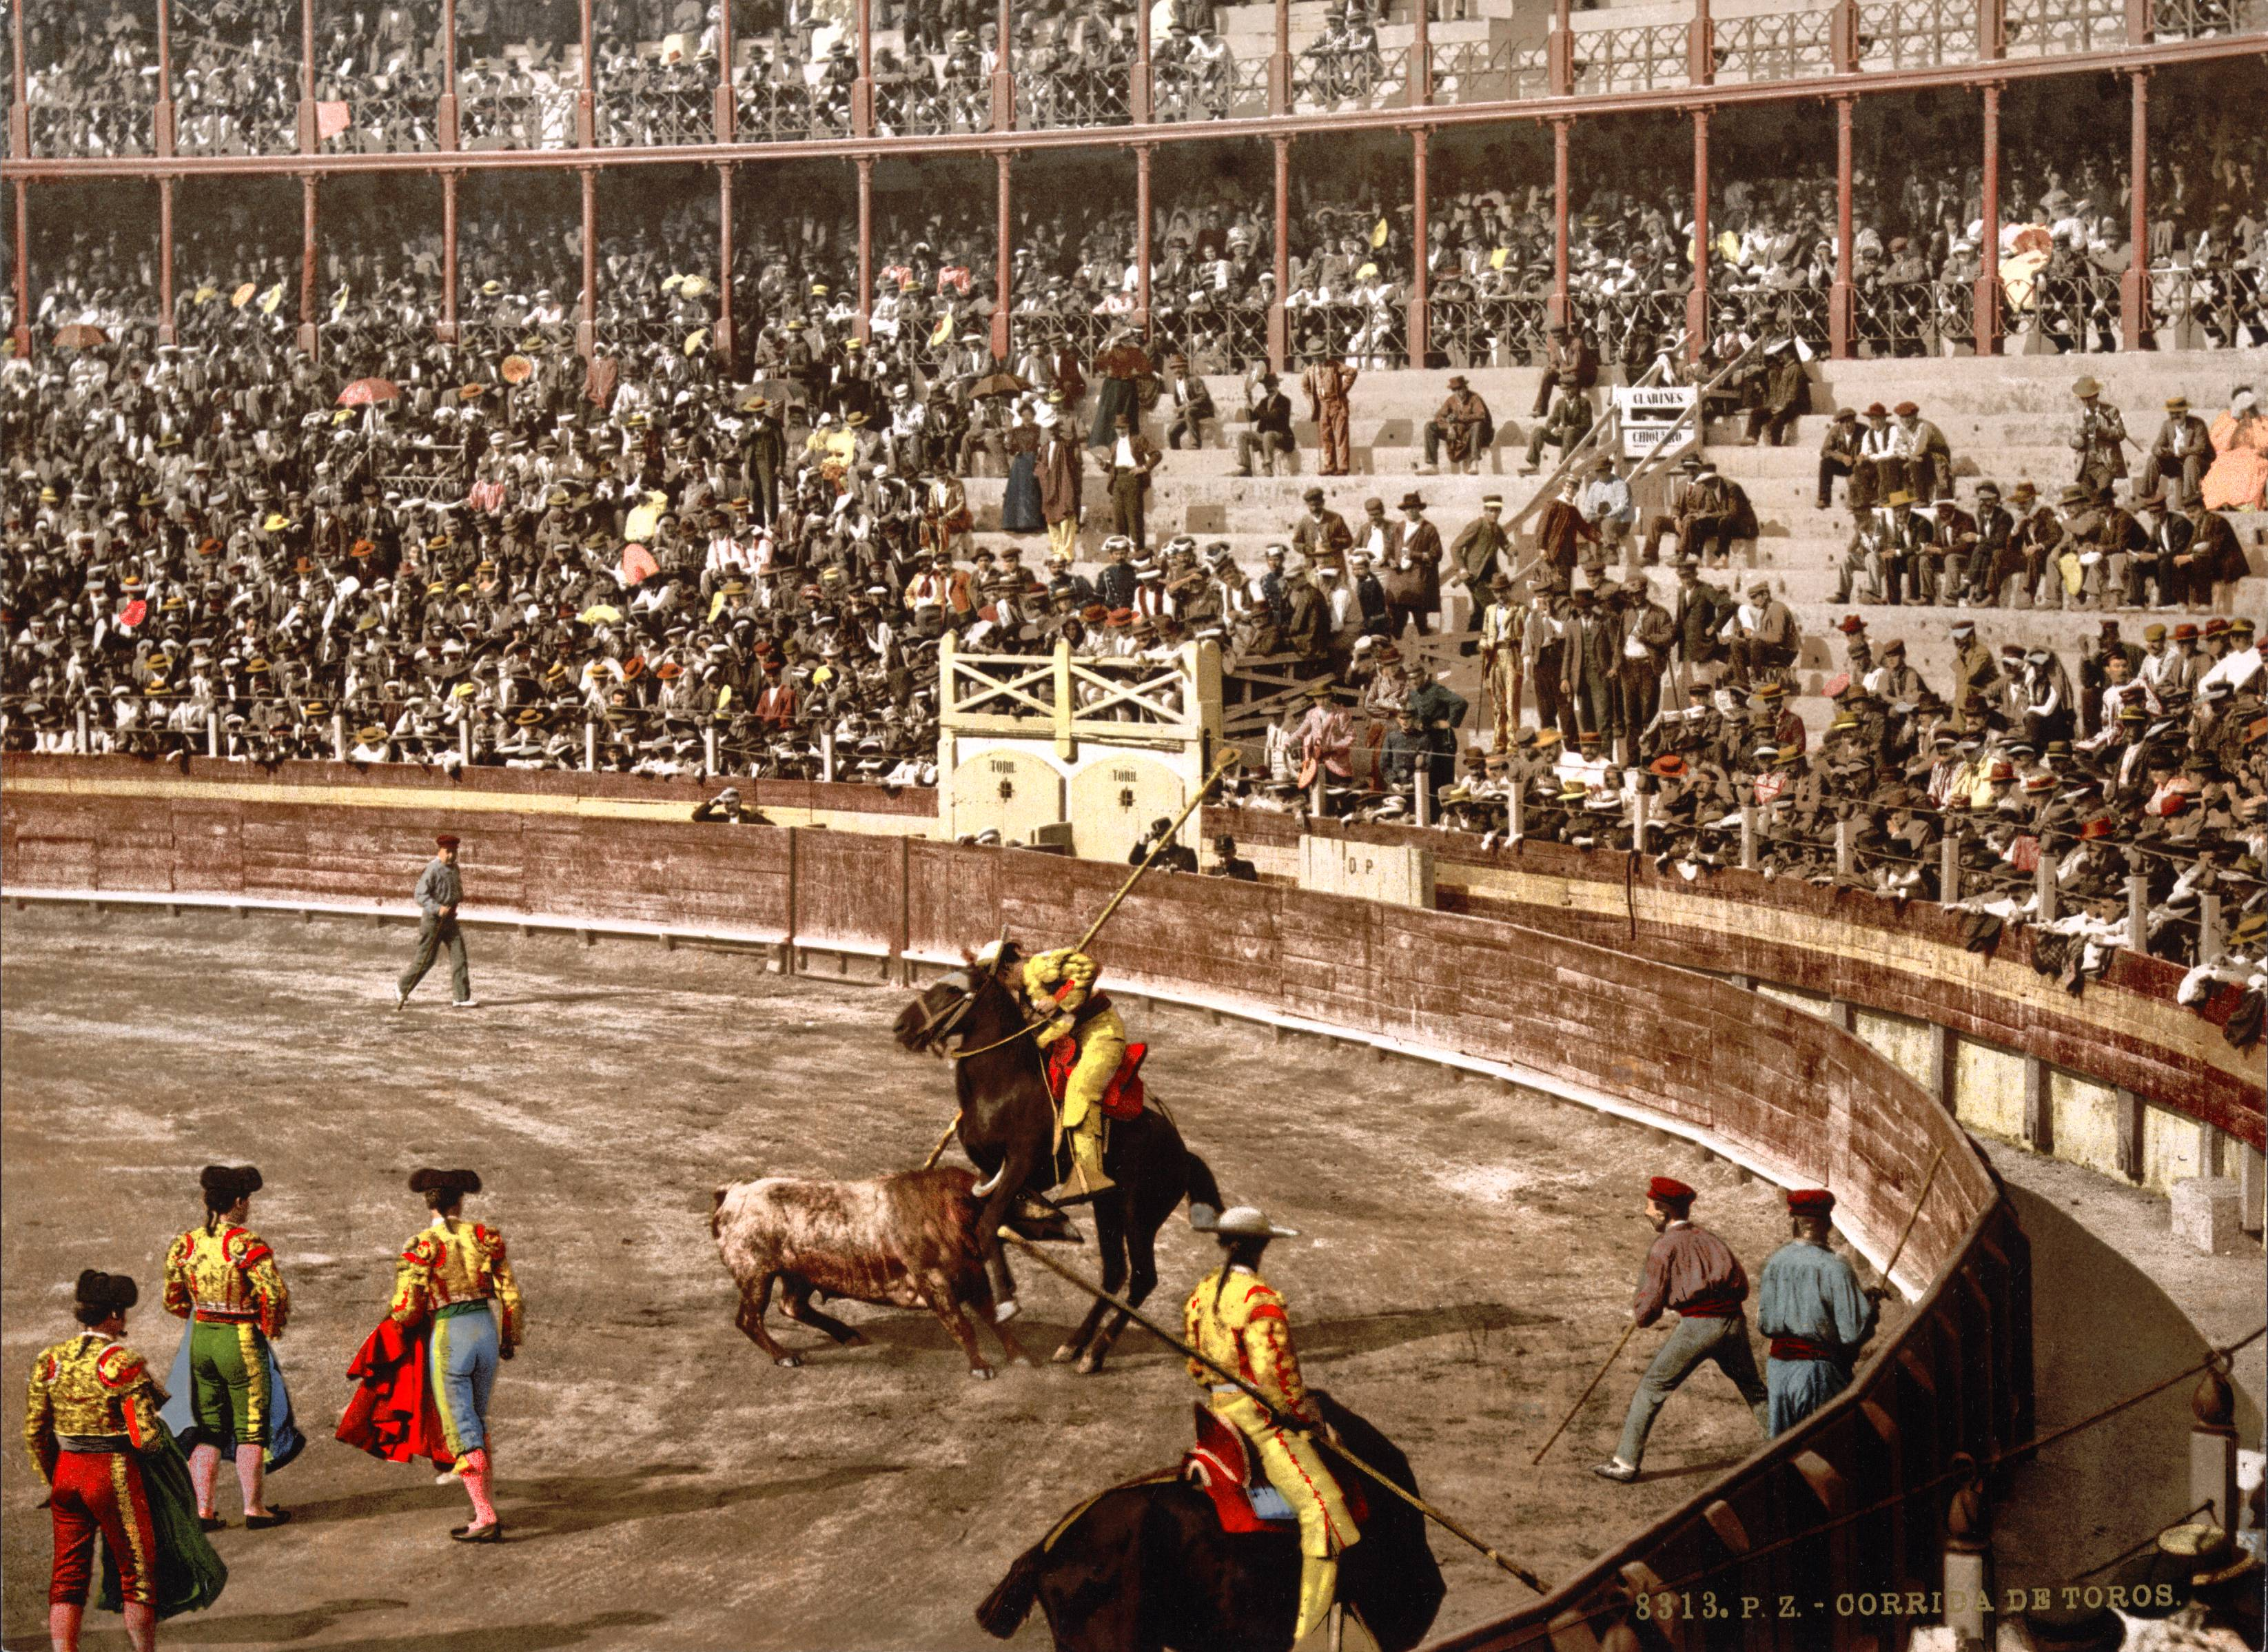 A Bull Fight Barcelona Spain about 1895